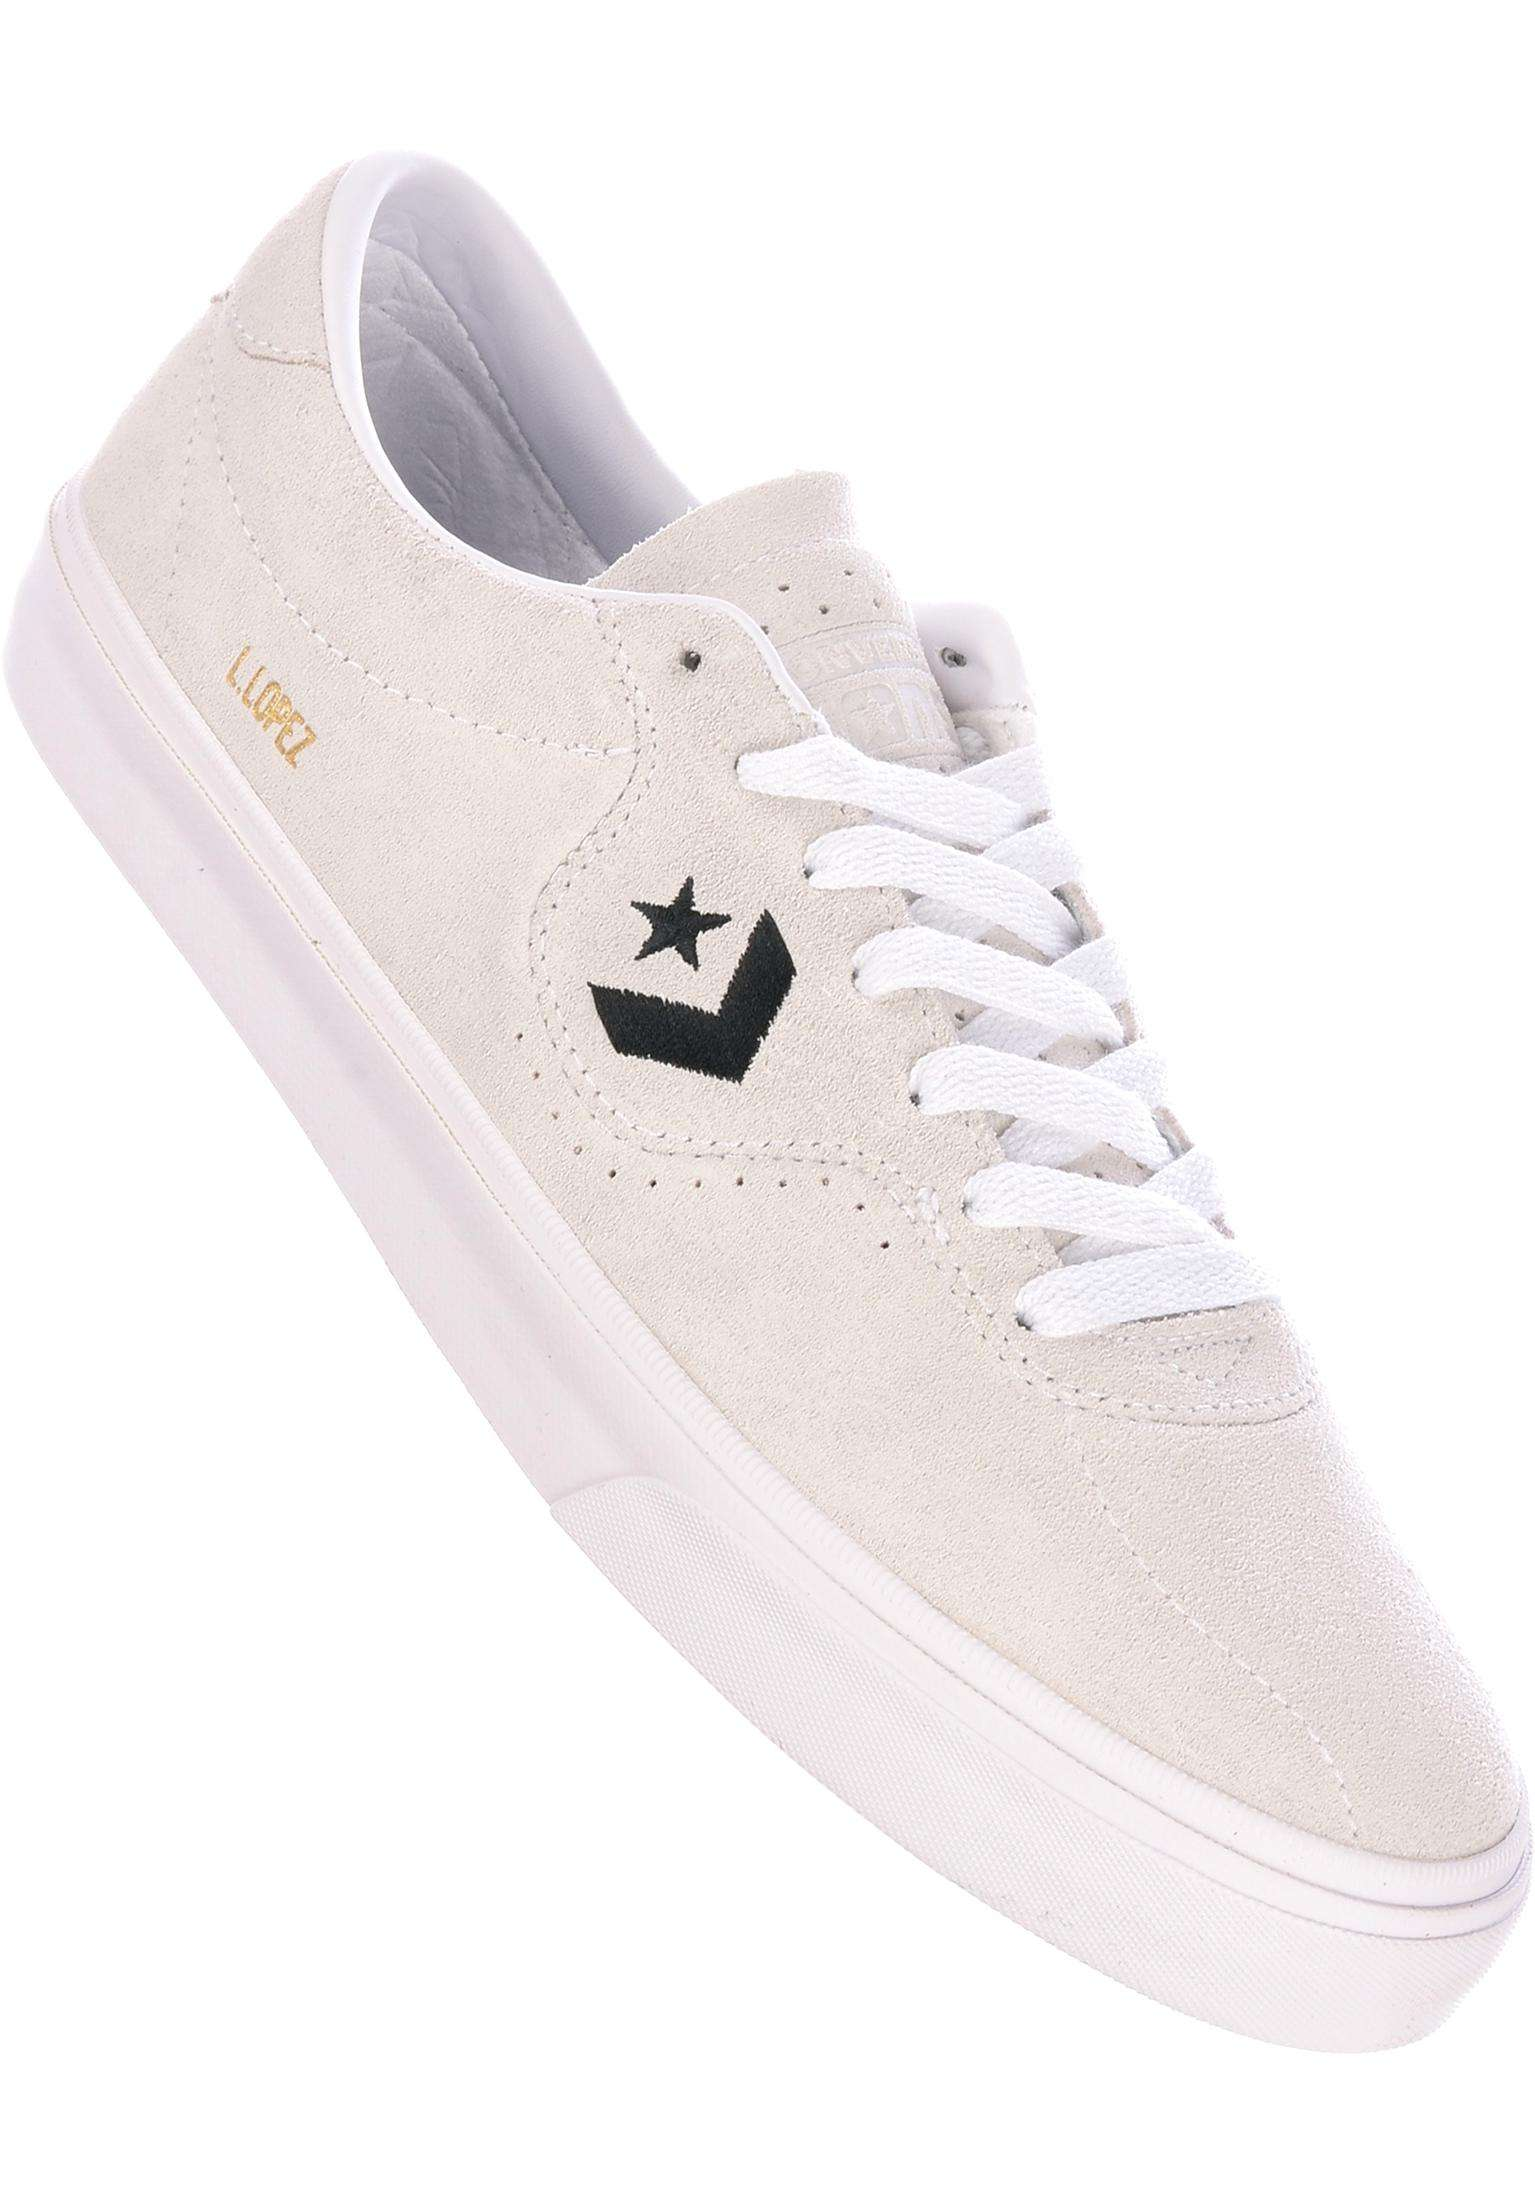 52000ef12569c2 Louie Lopez Pro OX Converse CONS All Shoes in white-white-black for Men